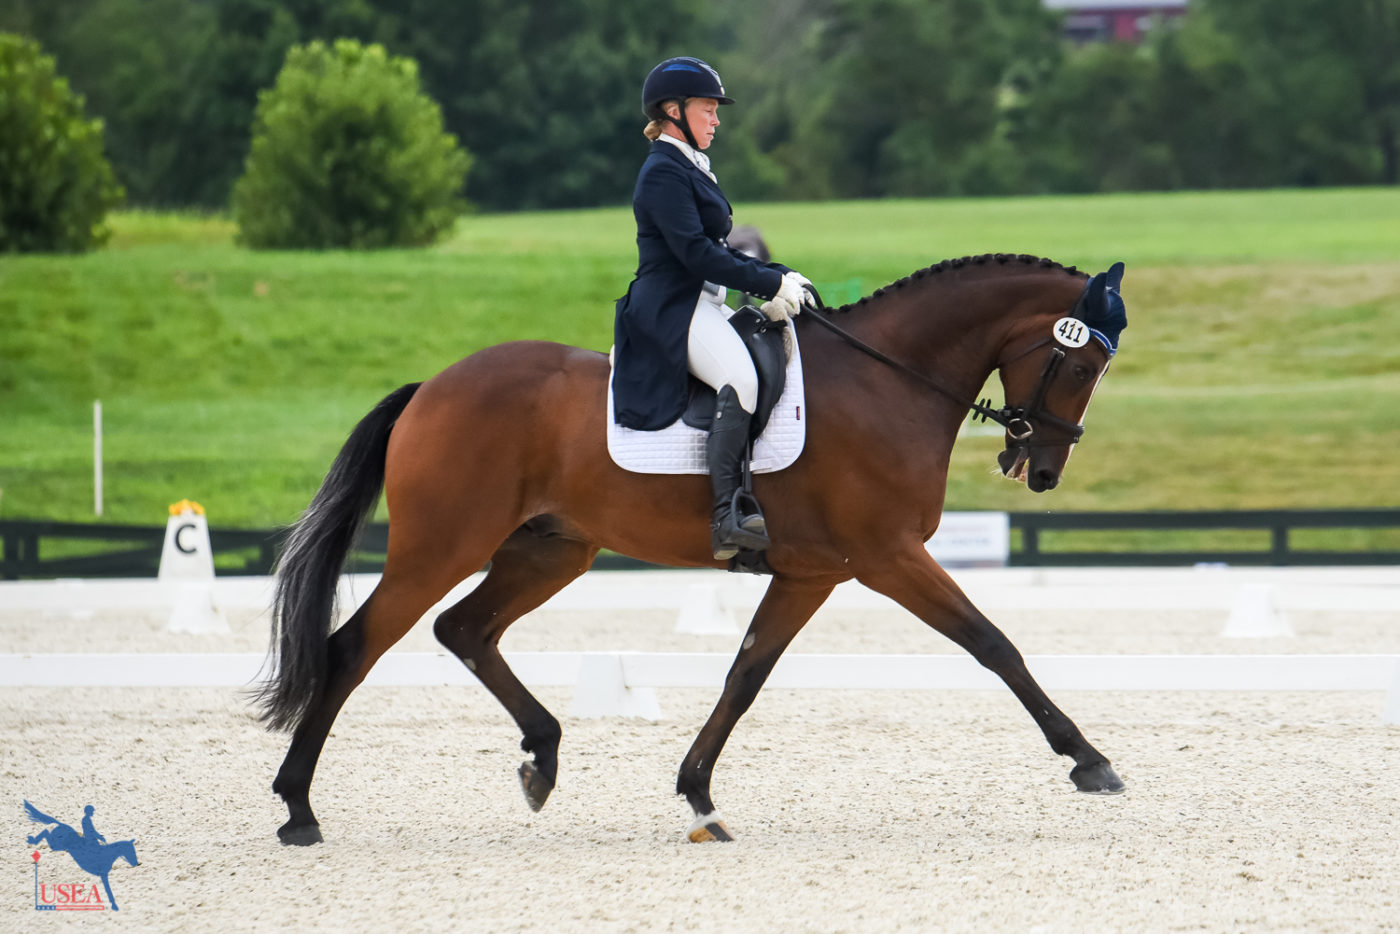 4th - Colleen Rutledge and Covert Rights - 27.9